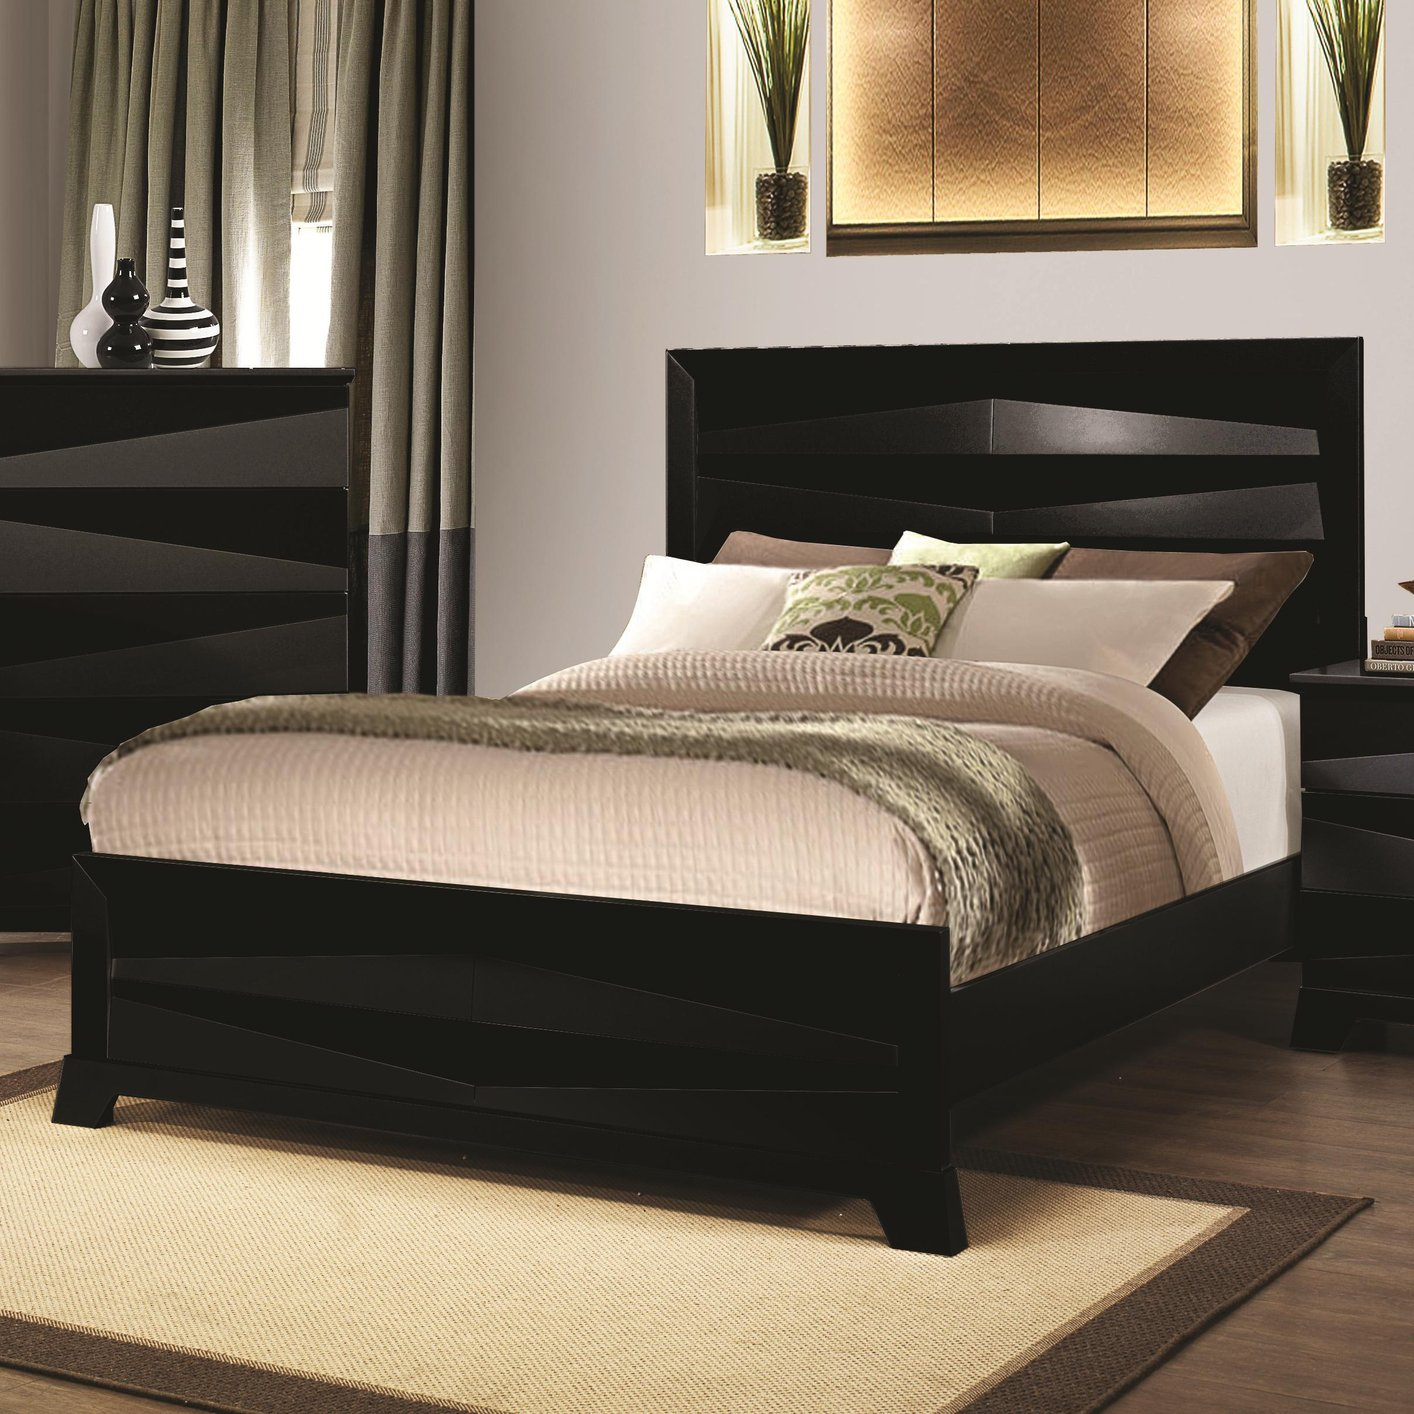 Kingsize Bed Black Wood California King Size Bed Steal A Sofa